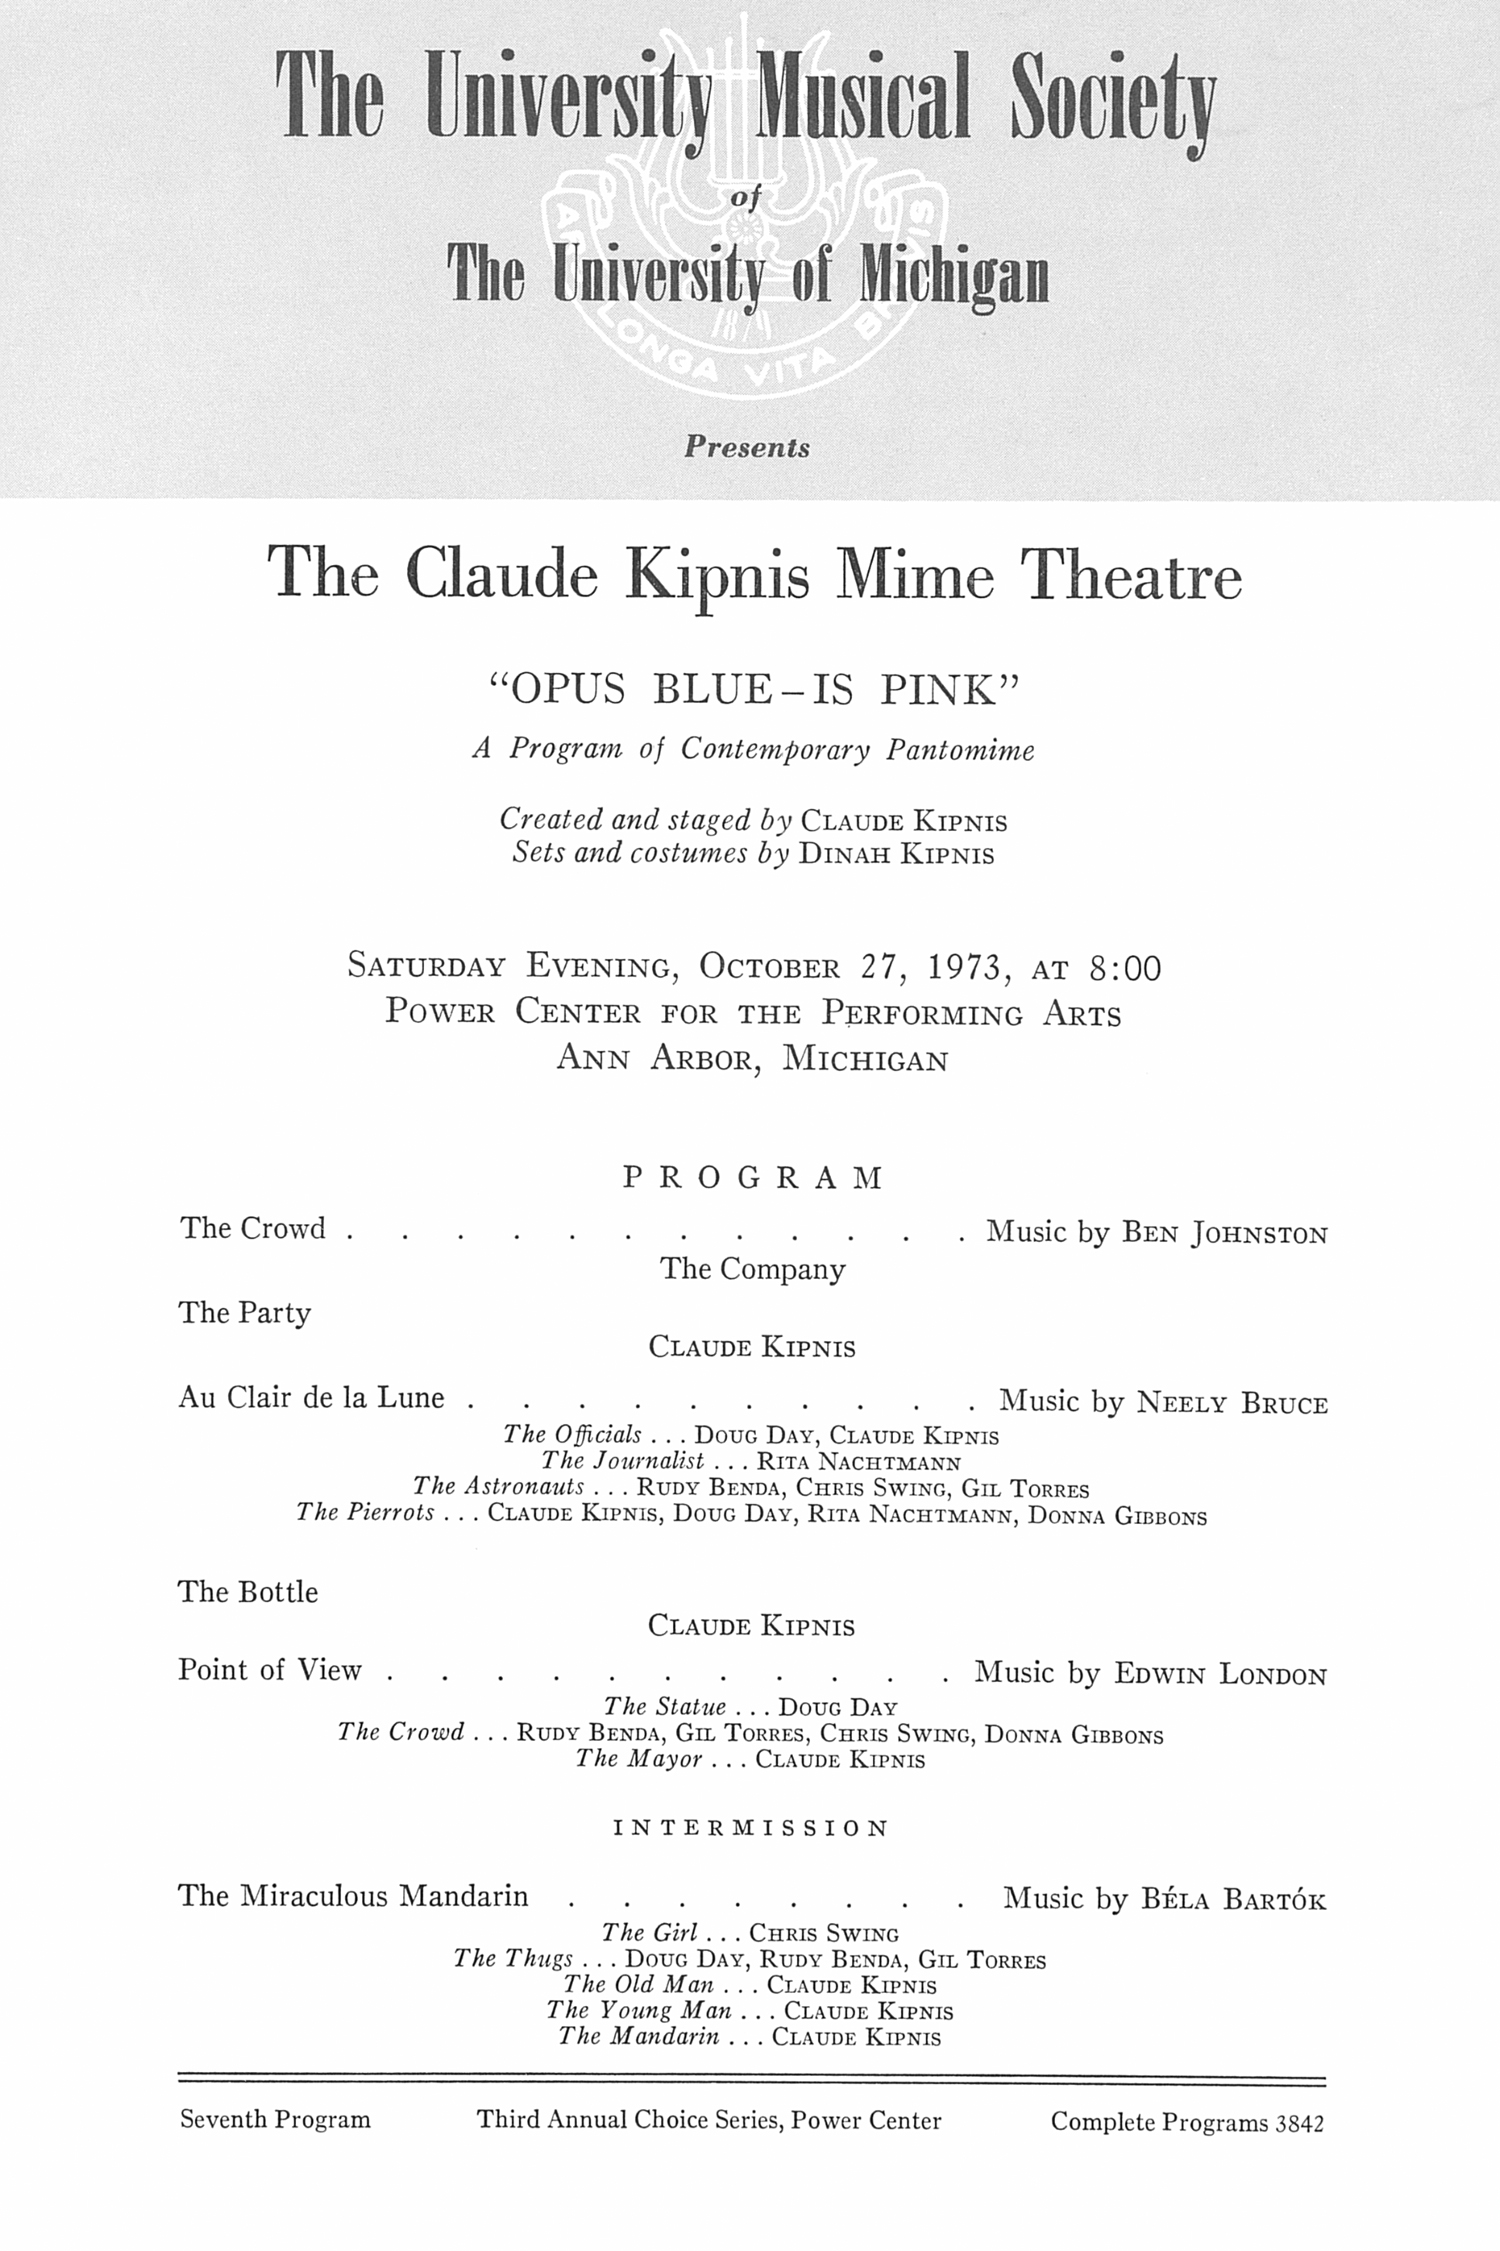 UMS Concert Program, October 27, 1973: The Claude Kipnis Mime Theatre --  image